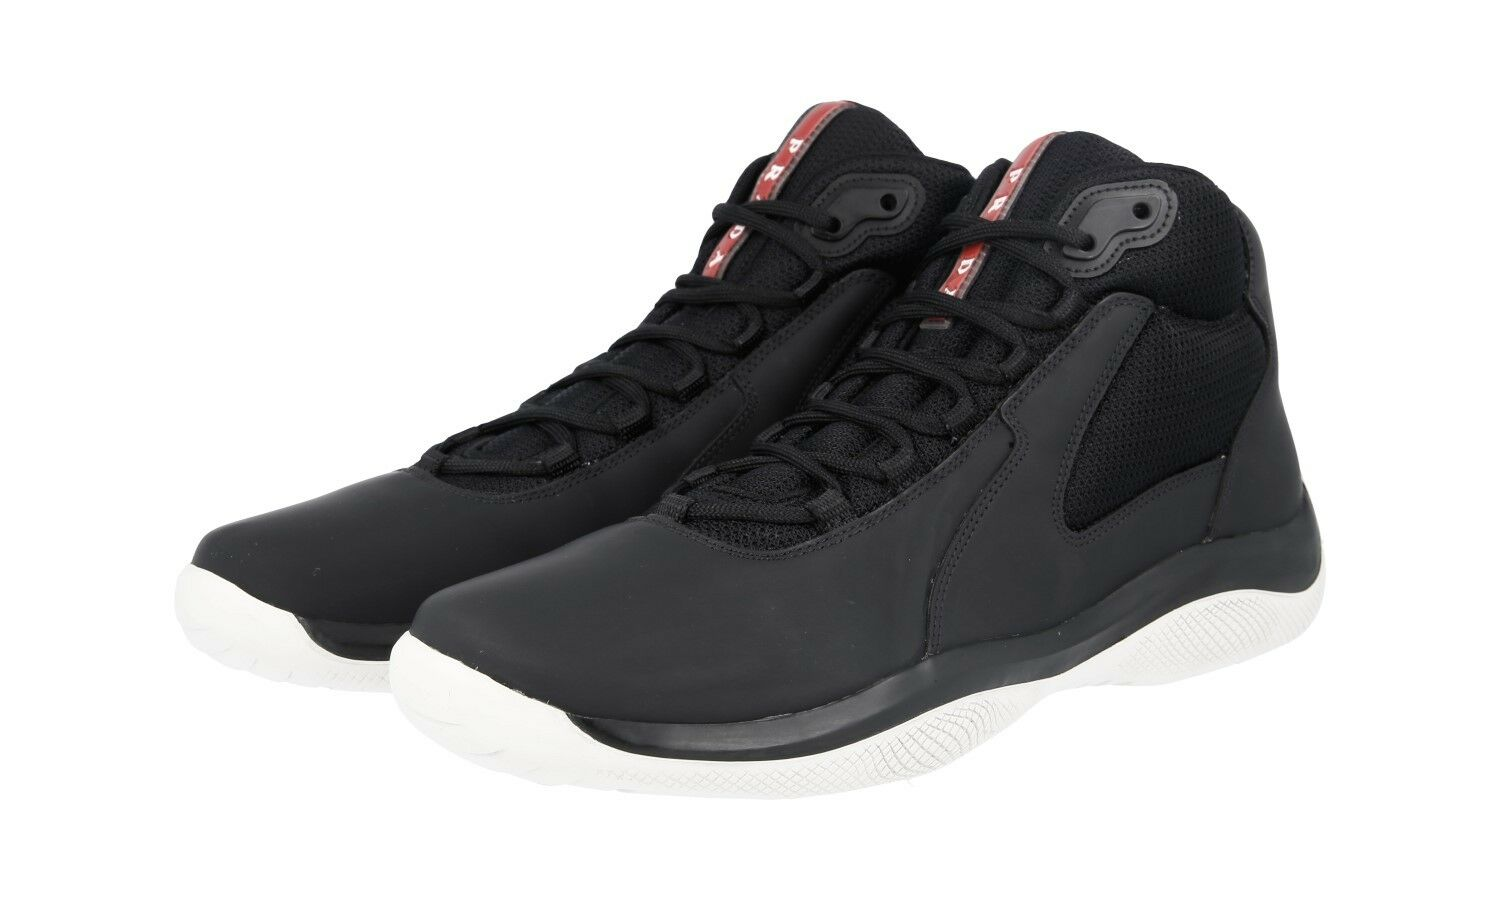 shoes HIGH-TOP SNEAKER PRADA LUSSO 4T2871 black BIANCO NUOVE 8 42 42,5